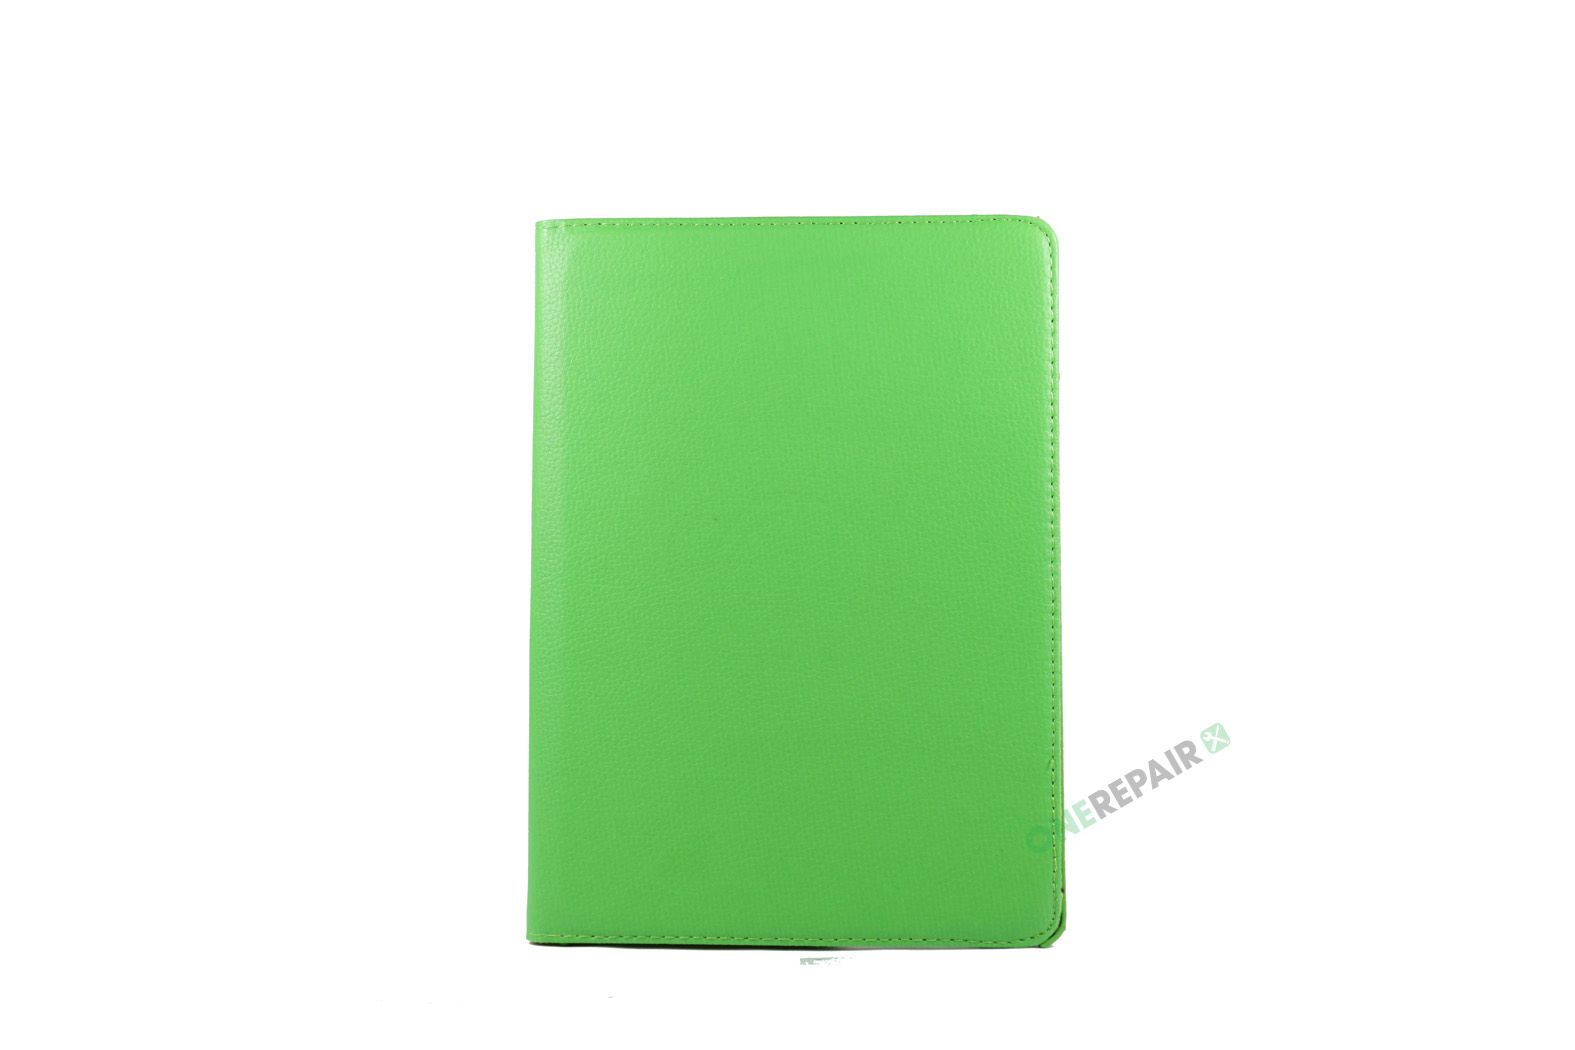 351018_iPad_Air_A1474_A1475_A1476_Flipcover_Cover_Groen_OneRepair_00002